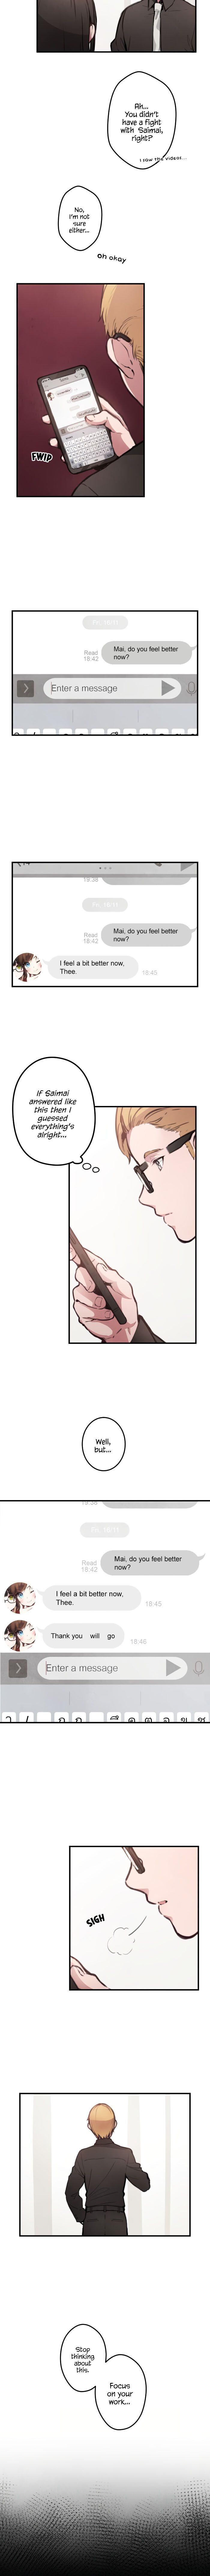 Until the End (Megalateo) - chapter 13 - #3